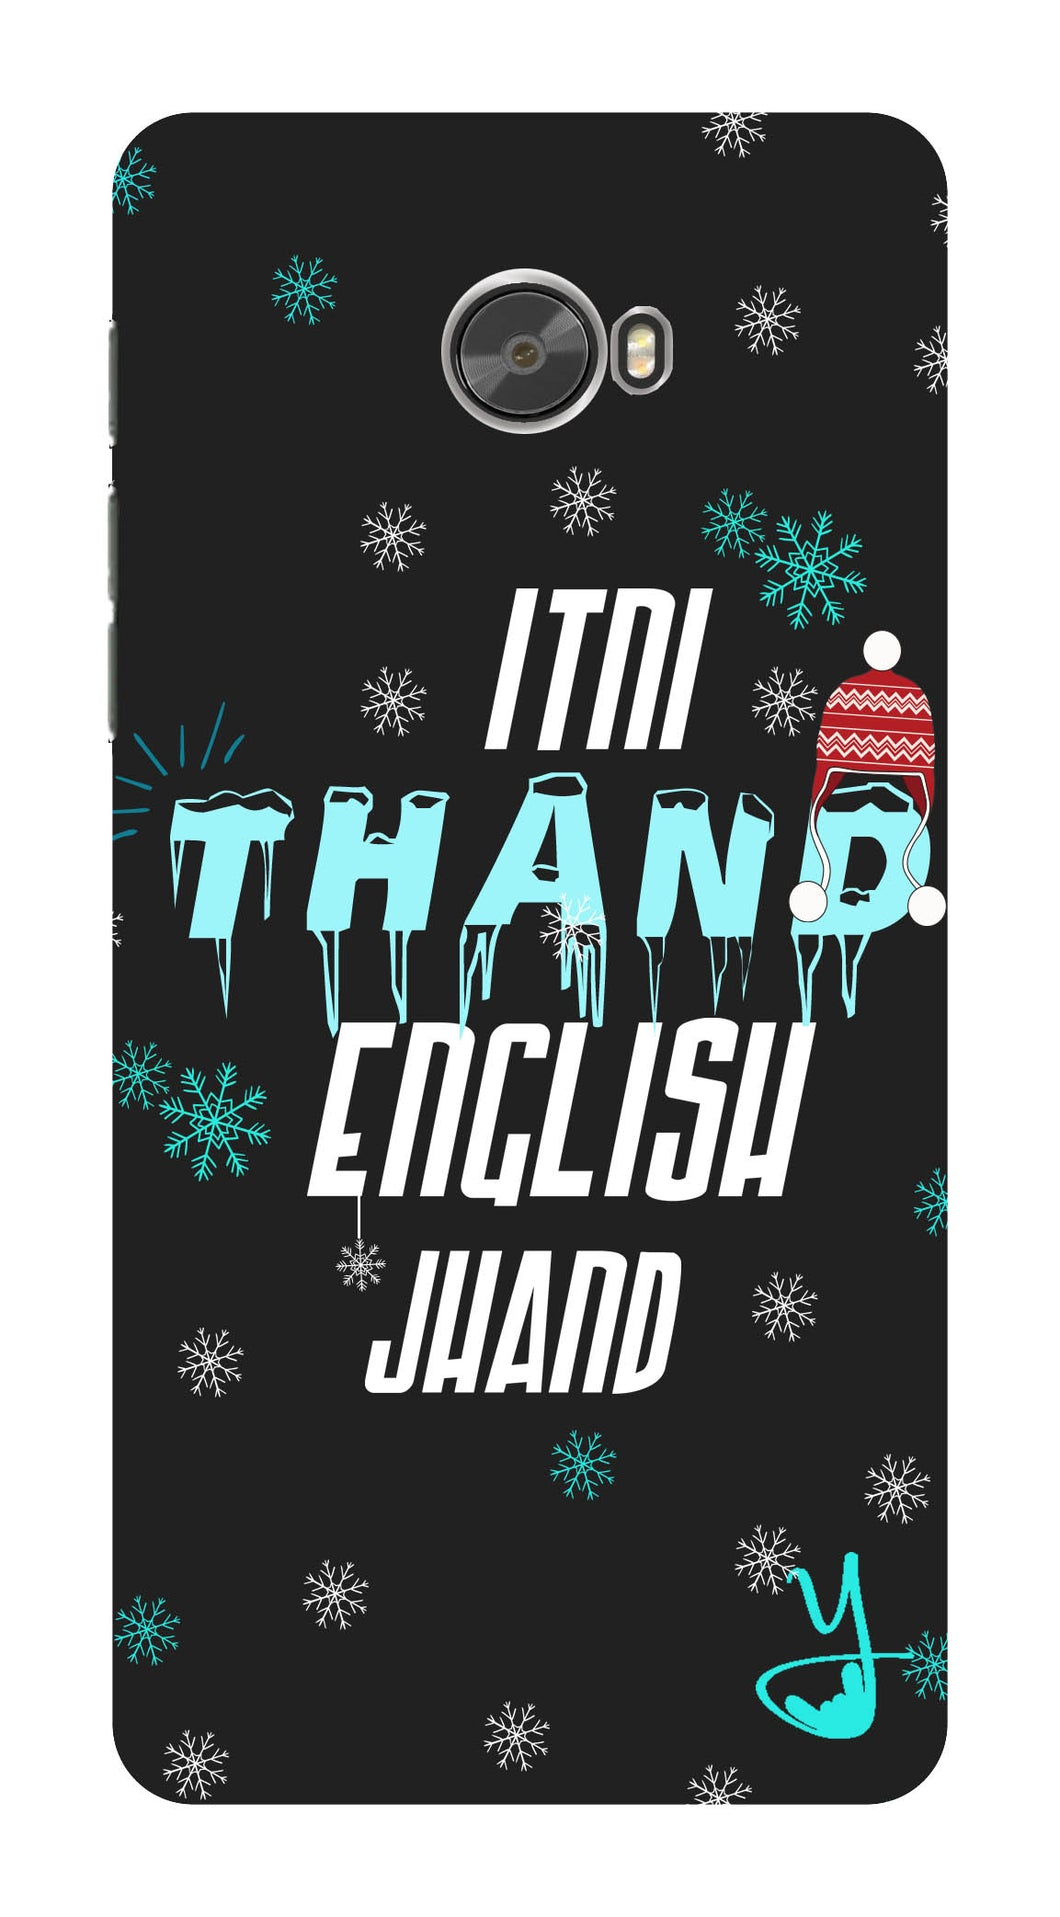 Itni Thand edition for Xiaomi Mi note 2